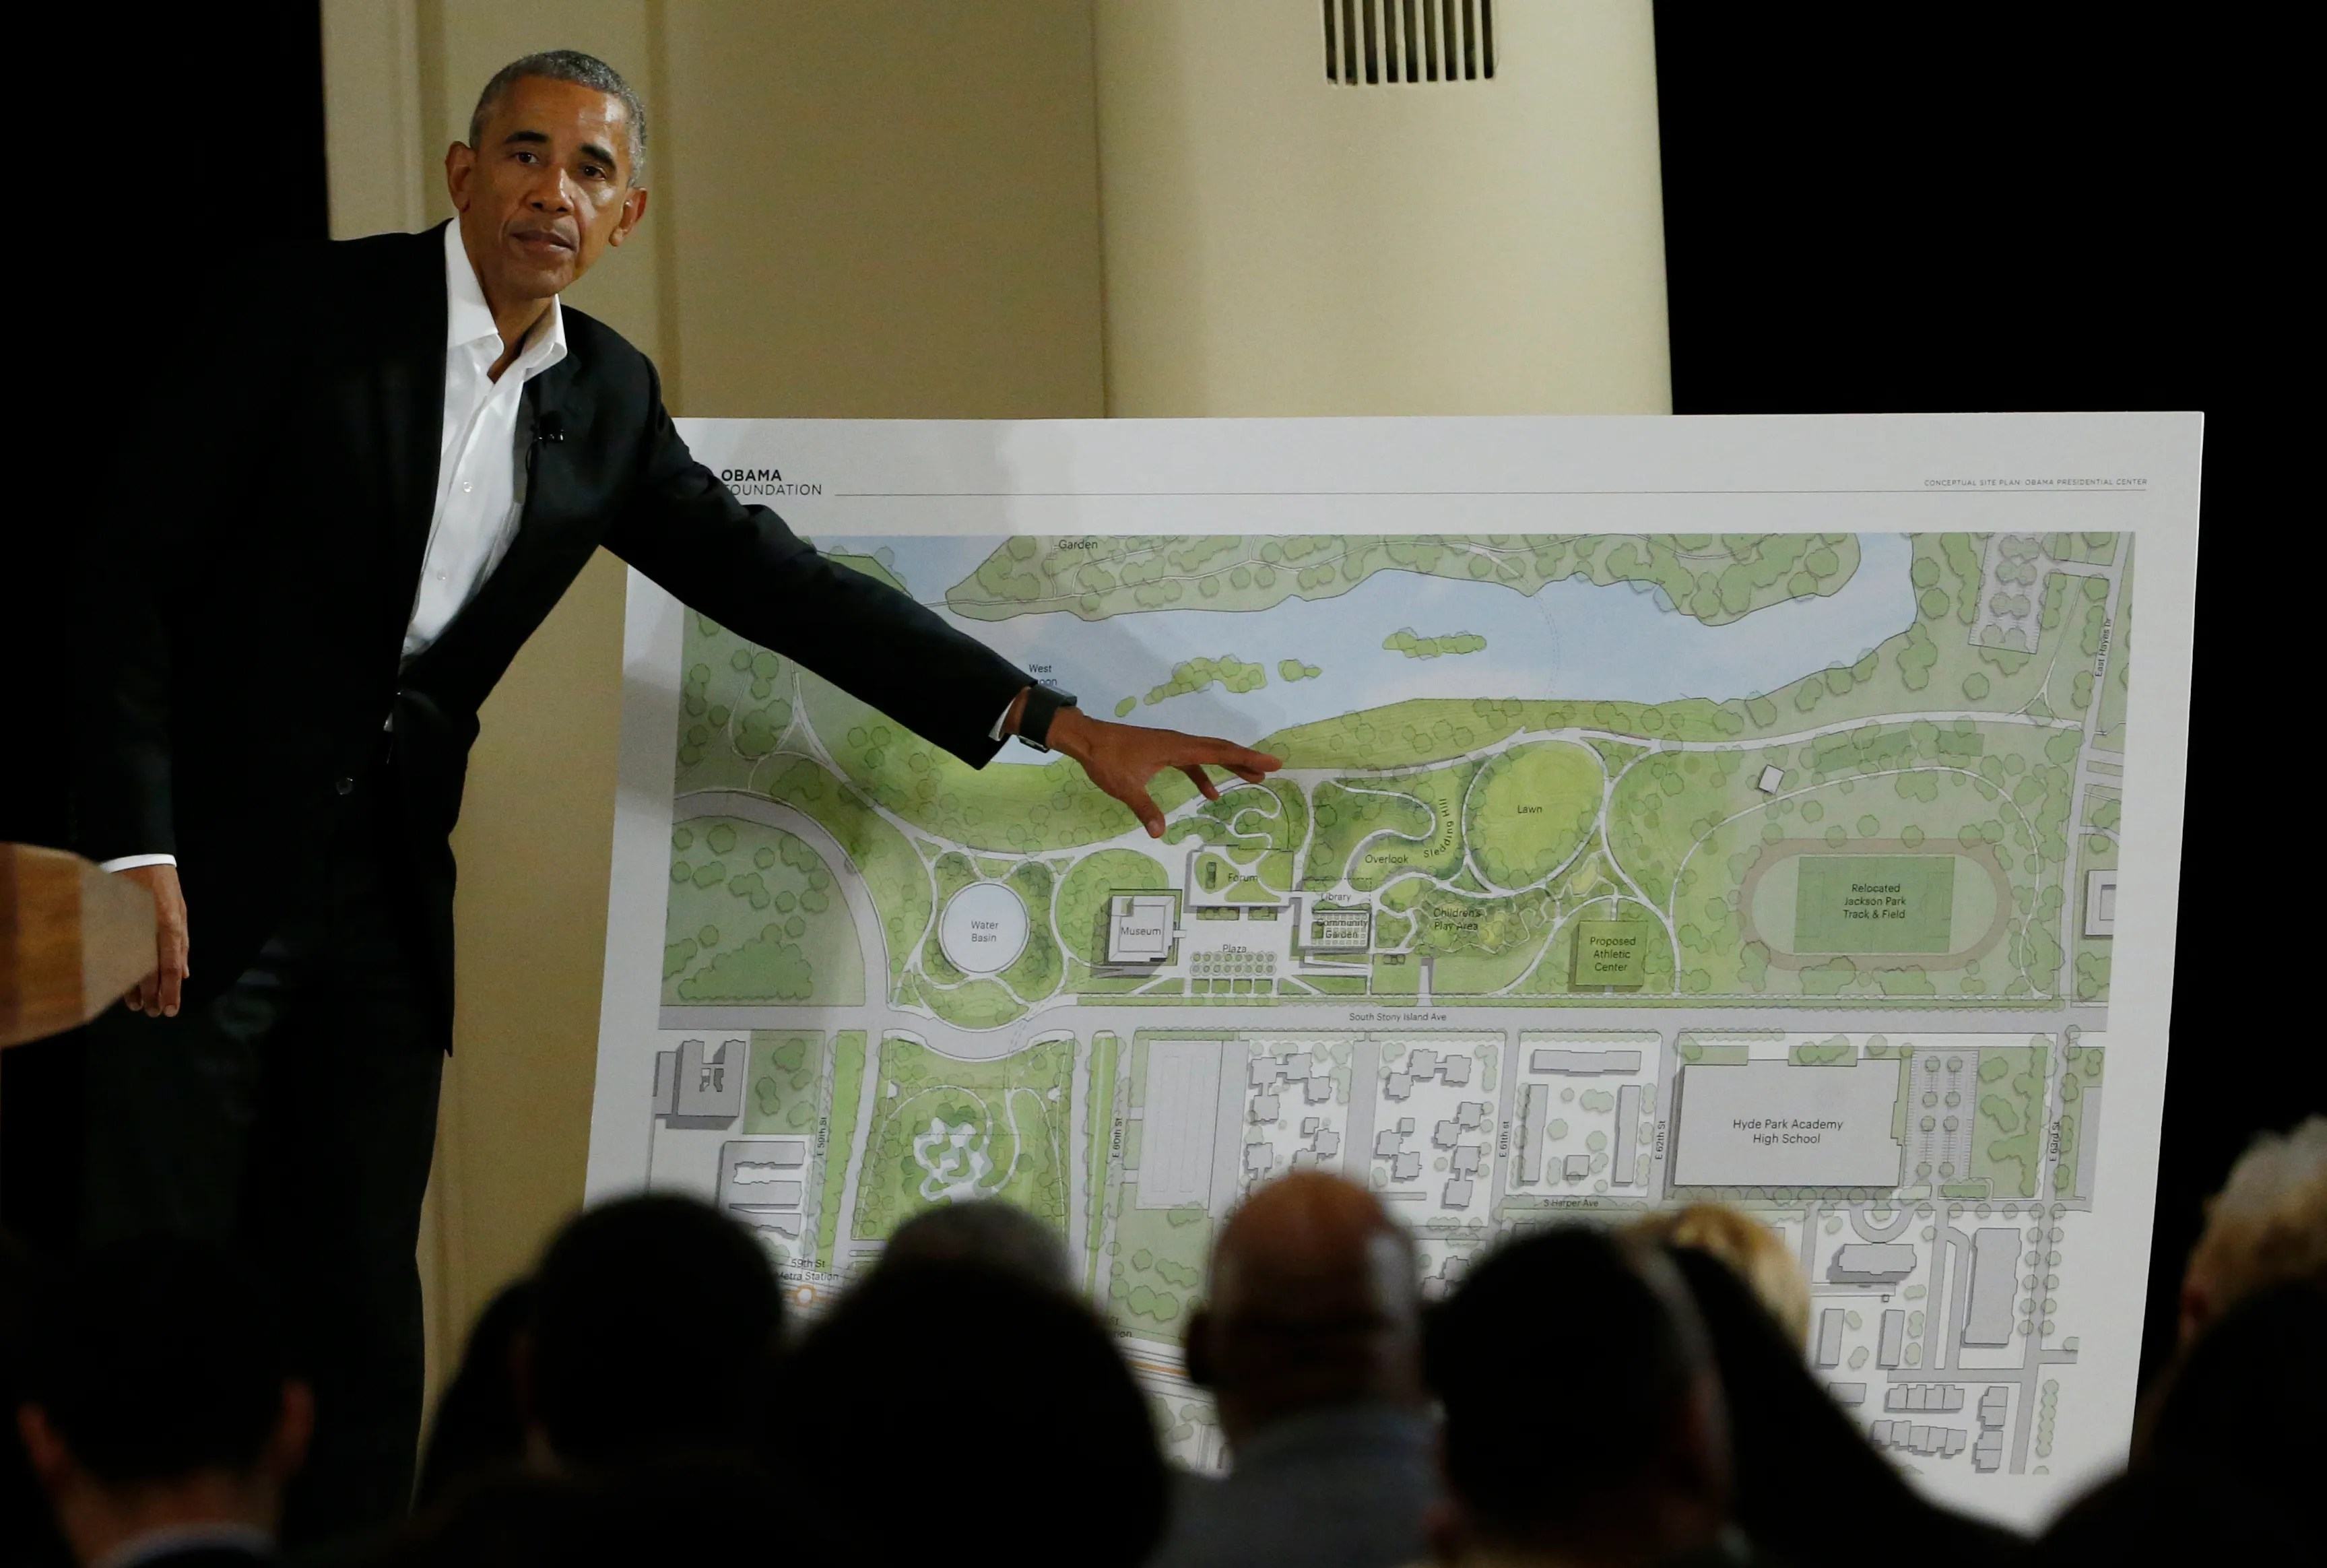 Former President Barack Obama speaks at a community event on the Presidential Center at the South Shore Cultural Center, Wednesday, May 3, 2017, in Chicago.